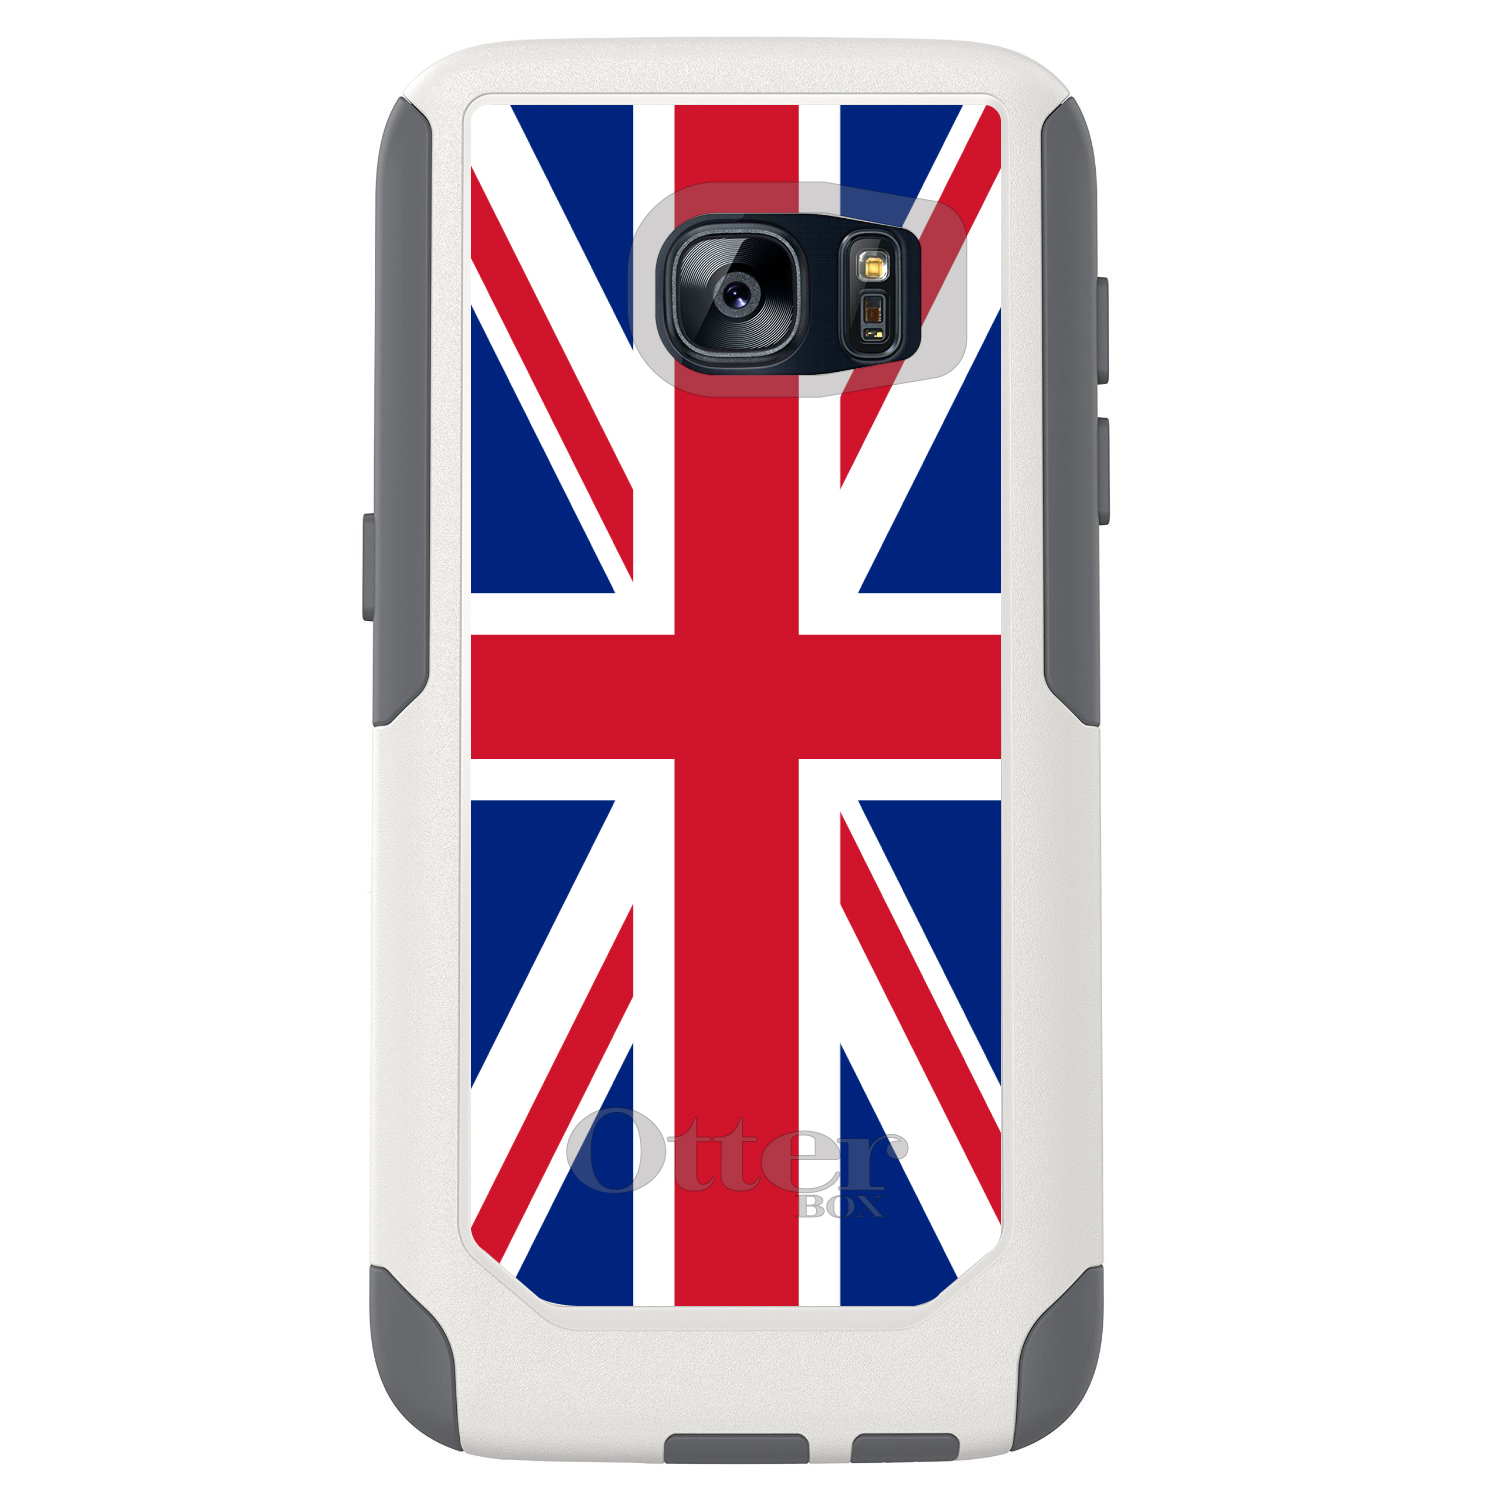 DistinctInk™ Custom White OtterBox Commuter Series Case for Samsung Galaxy S7 - Red White Blue British Flag UK